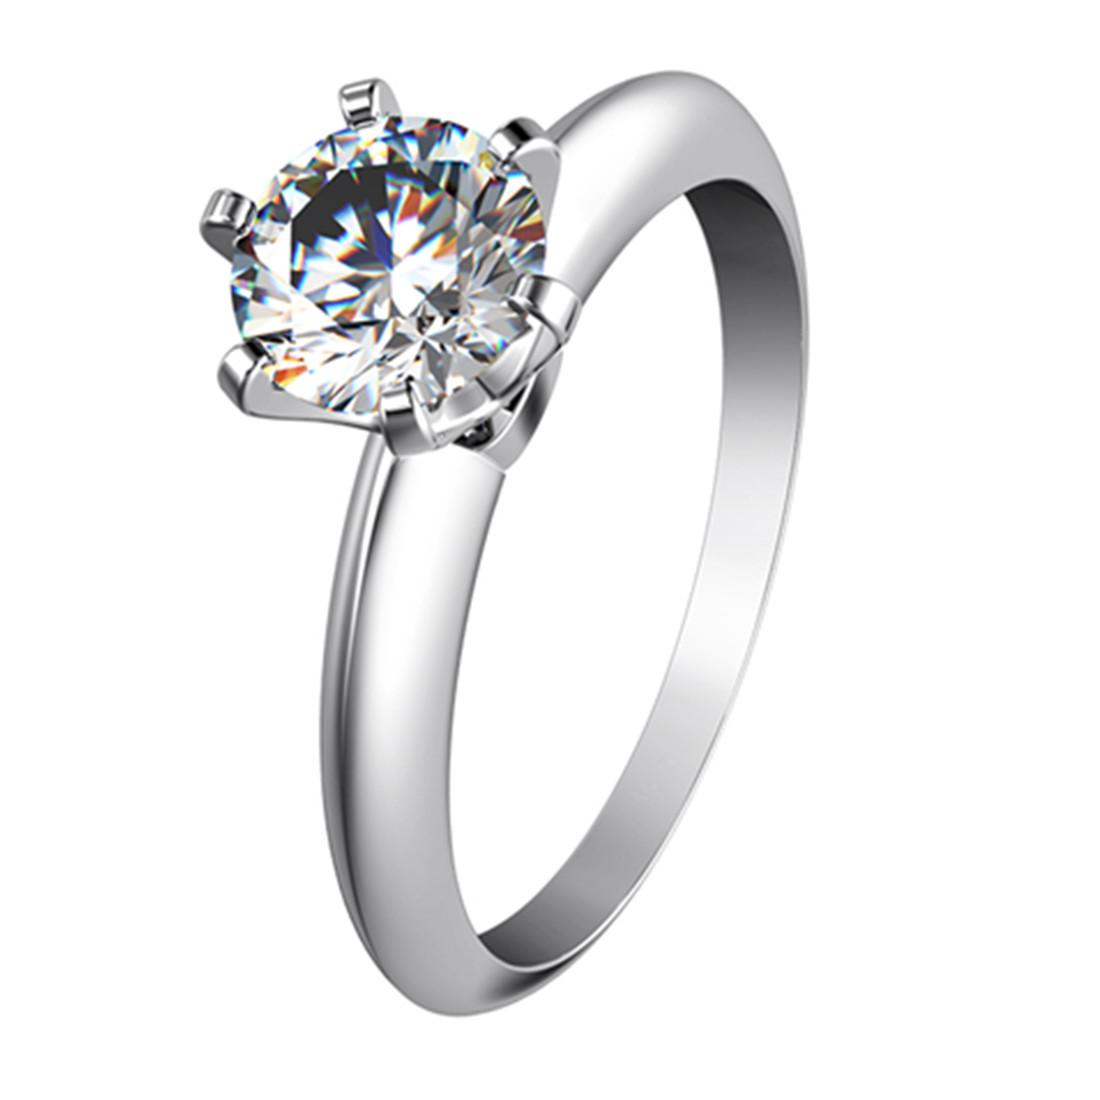 2de2d7b08b7 2019 Elegant 0.6Ct Synthetic Diamond Ring For Women 925 Sterling Silver  Ring White Gold Plated Jewelry Romantic Tryst Gift From Sonadiamondring